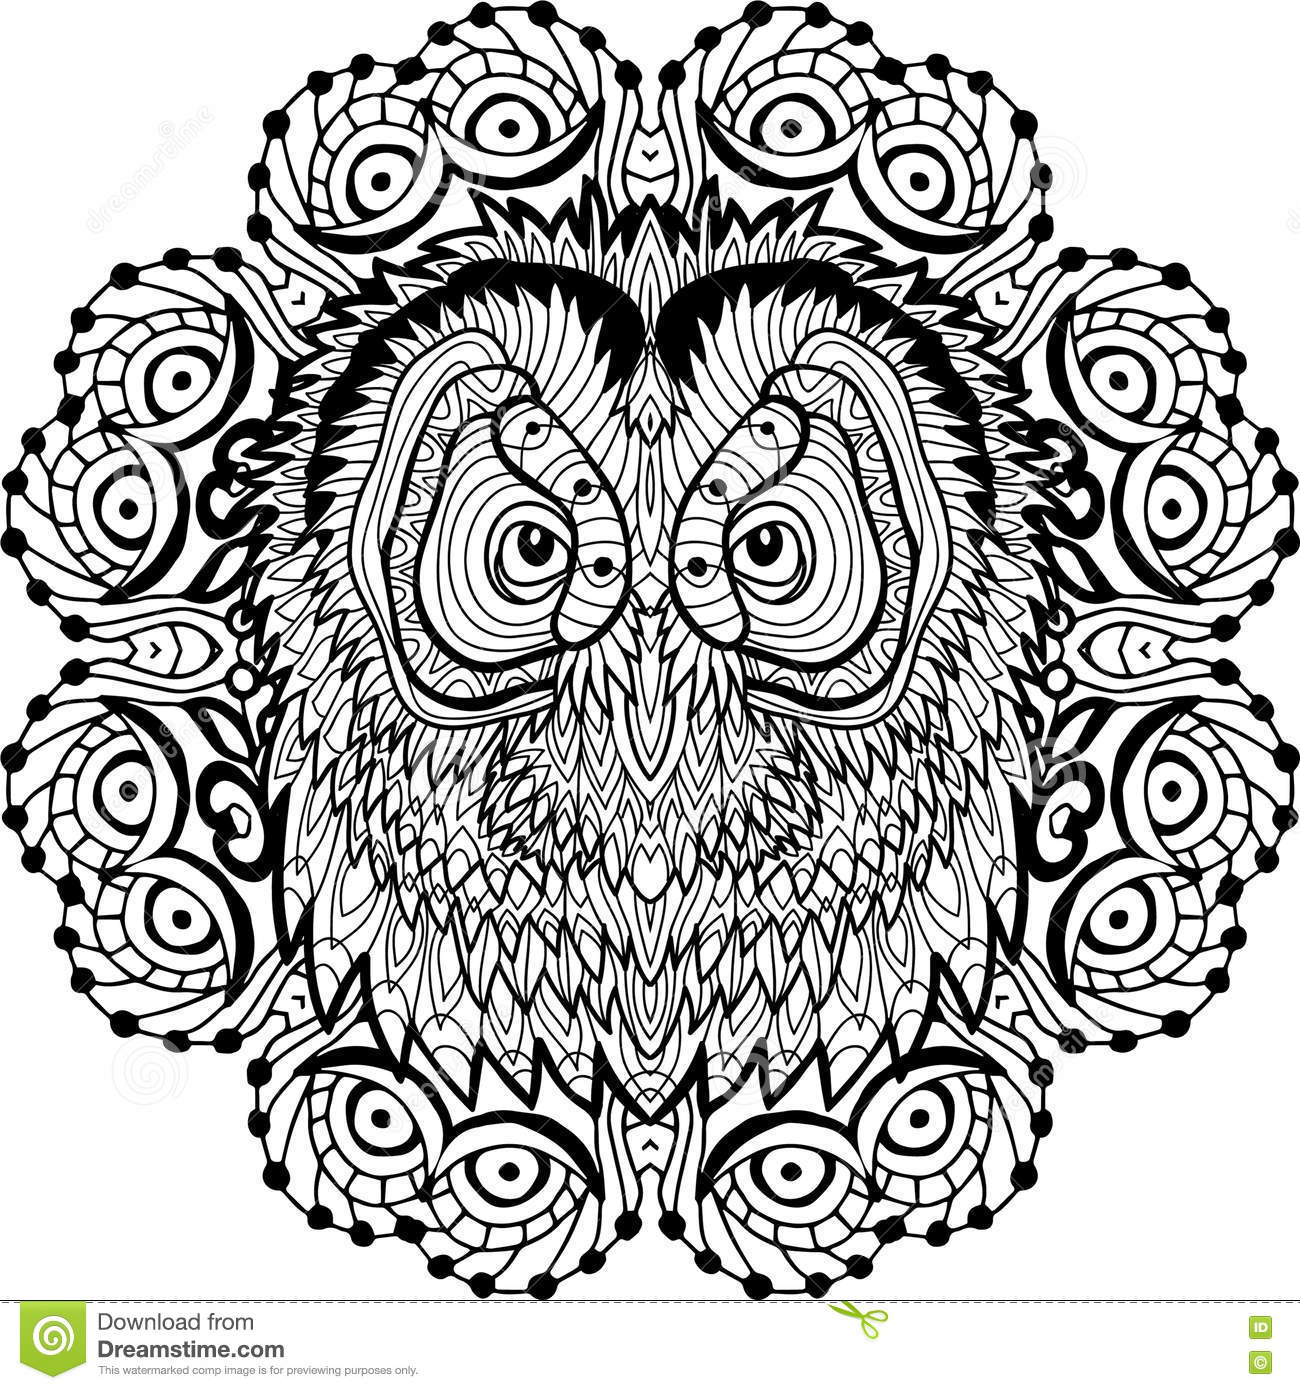 Owl simple patterns 1 - Owls Coloring Pages for Adults - Just ... | 1390x1300